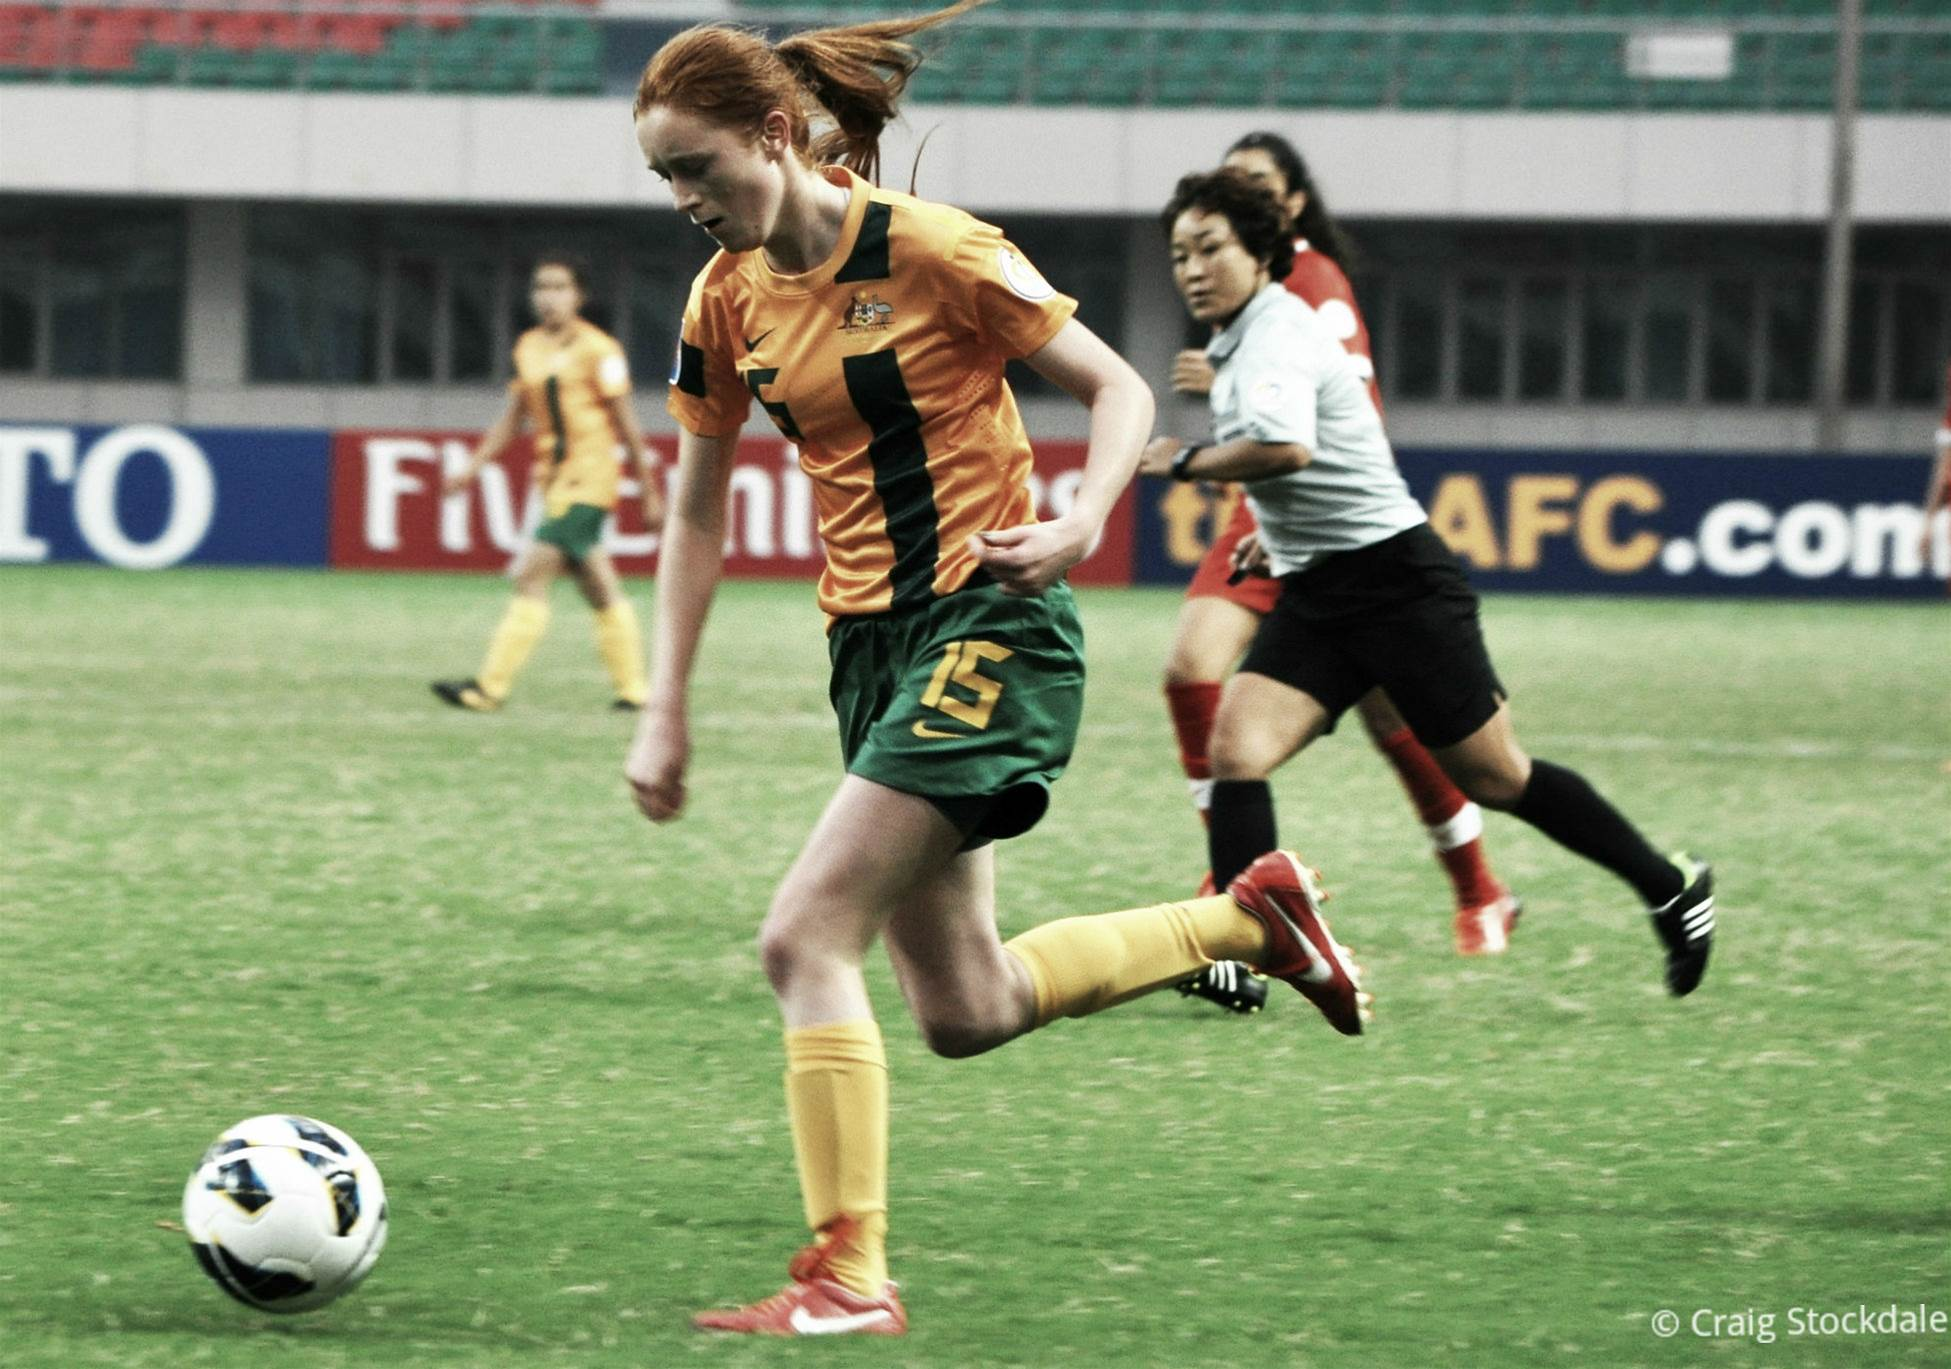 Australia cruise to opening 6-0 win over Hong Kong